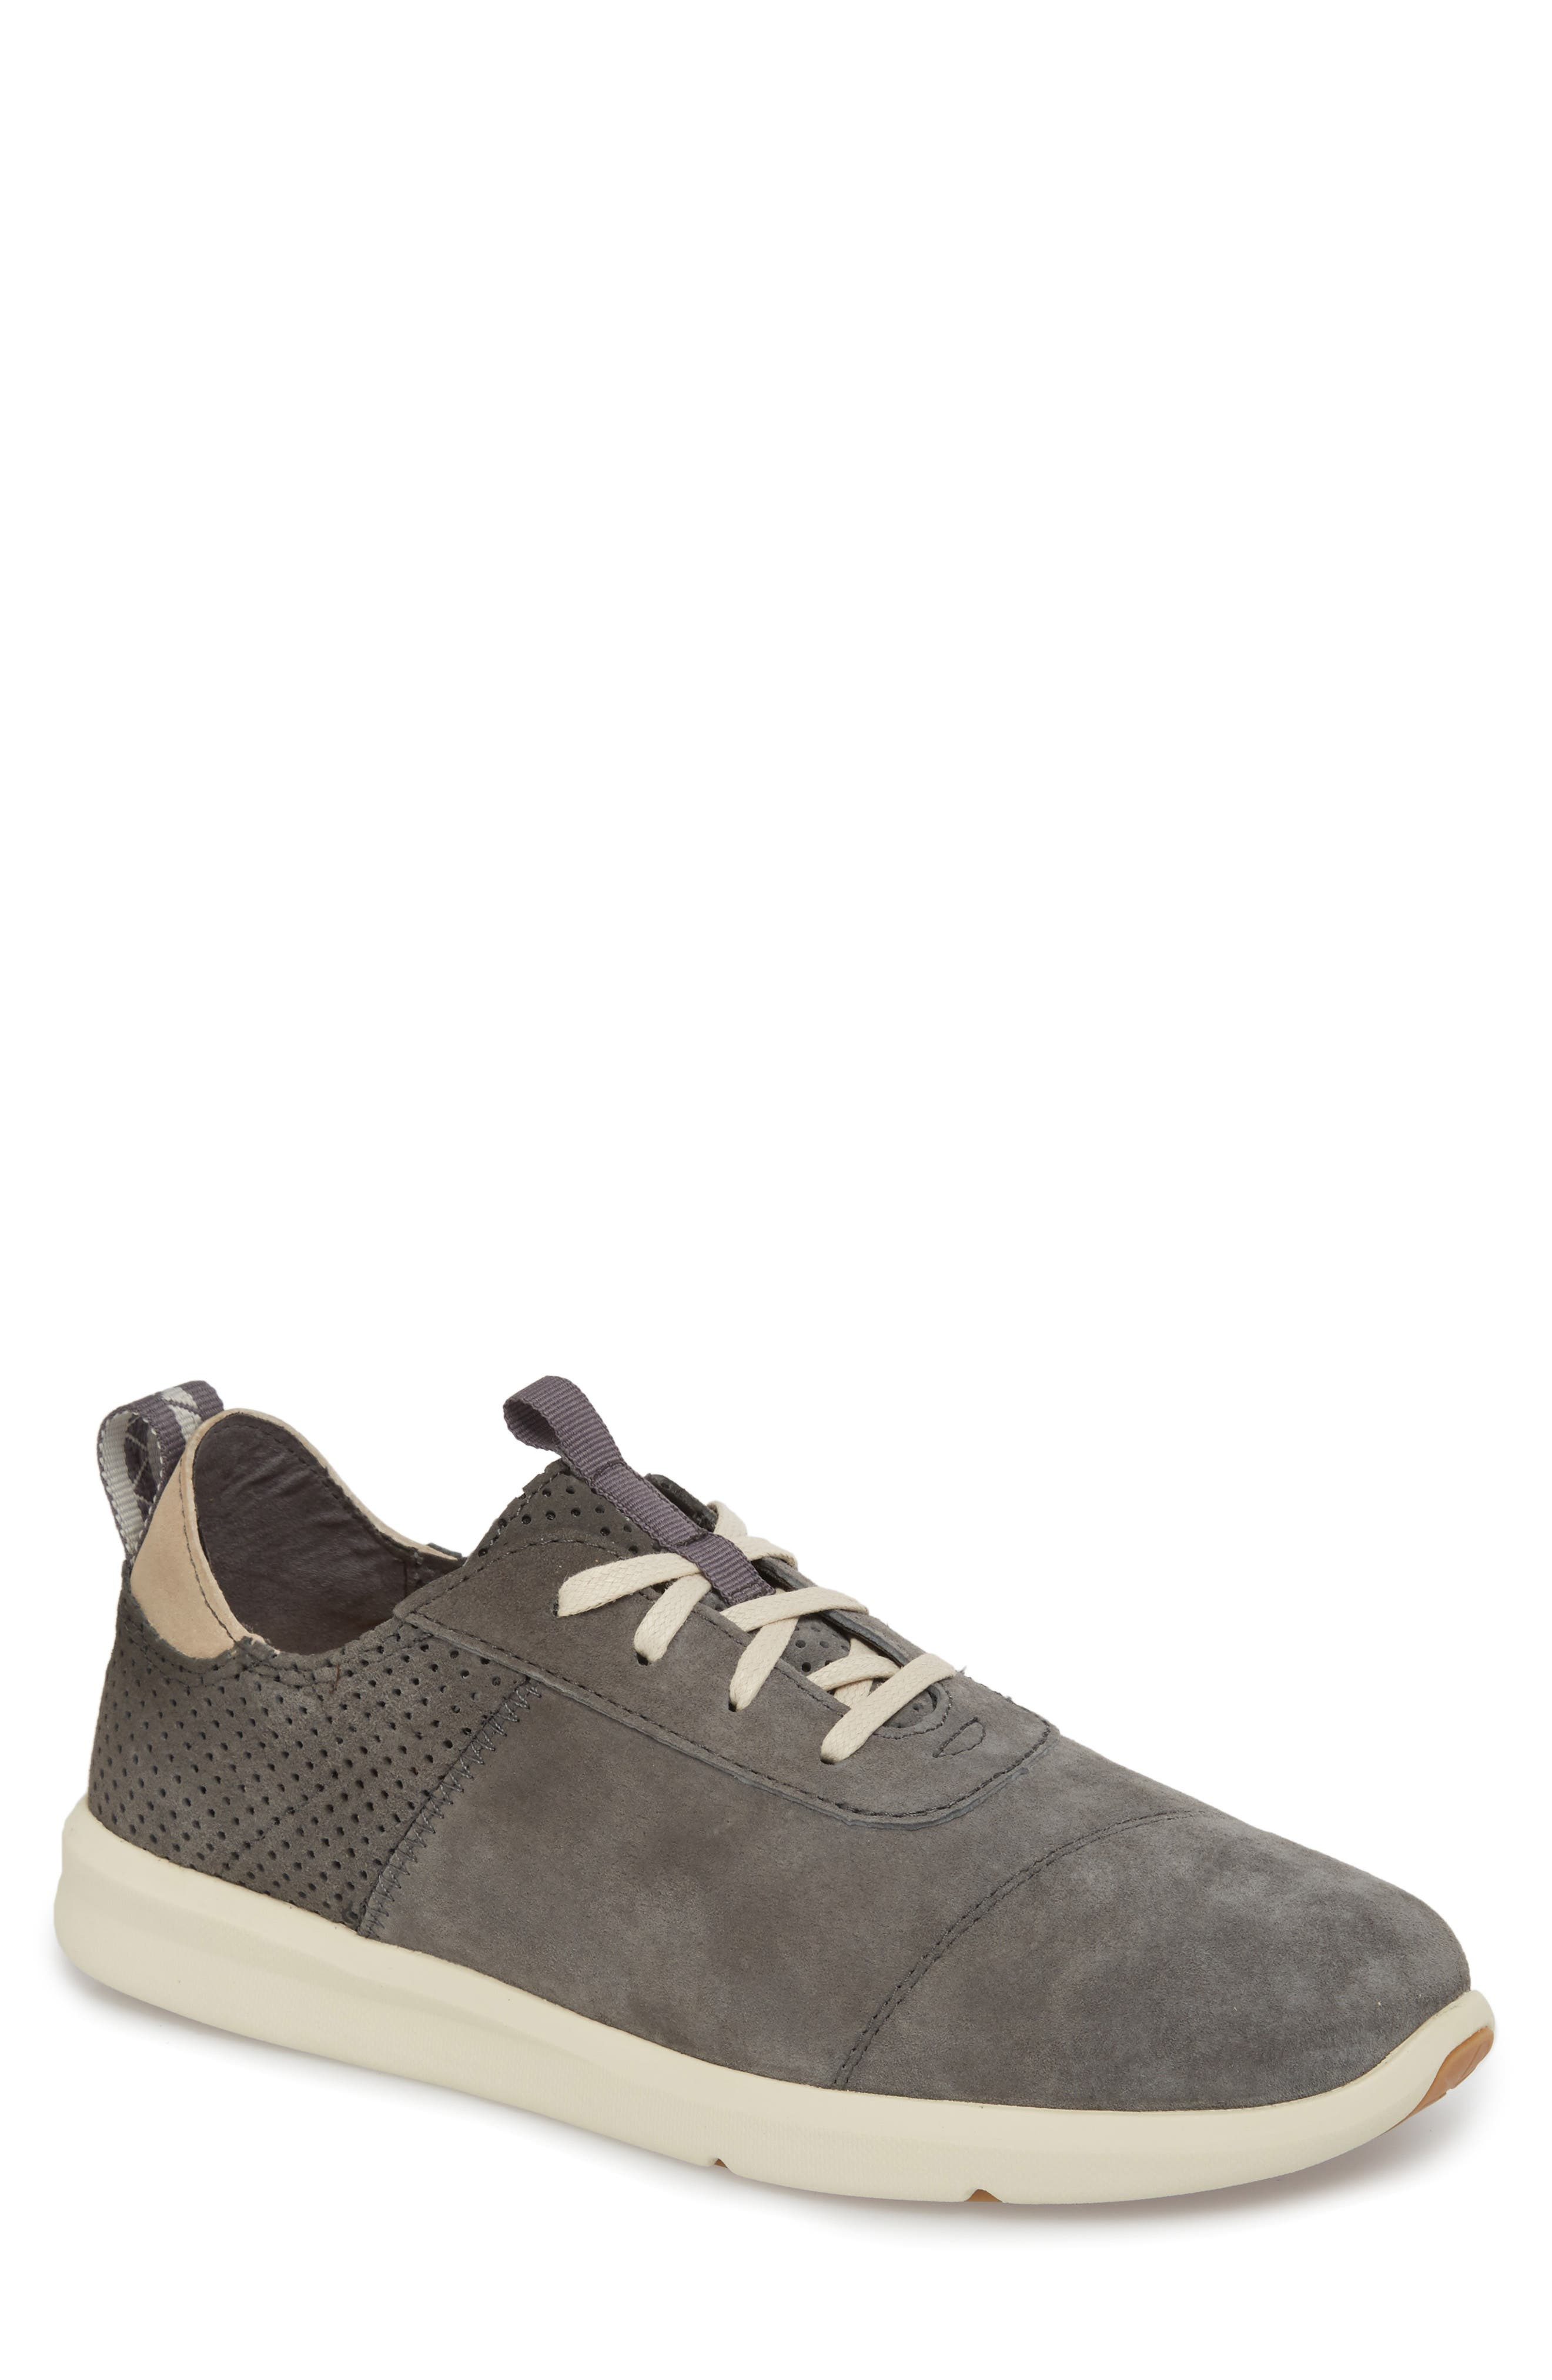 Cabrillo Perforated Low Top Sneaker,                             Main thumbnail 1, color,                             Shade Suede